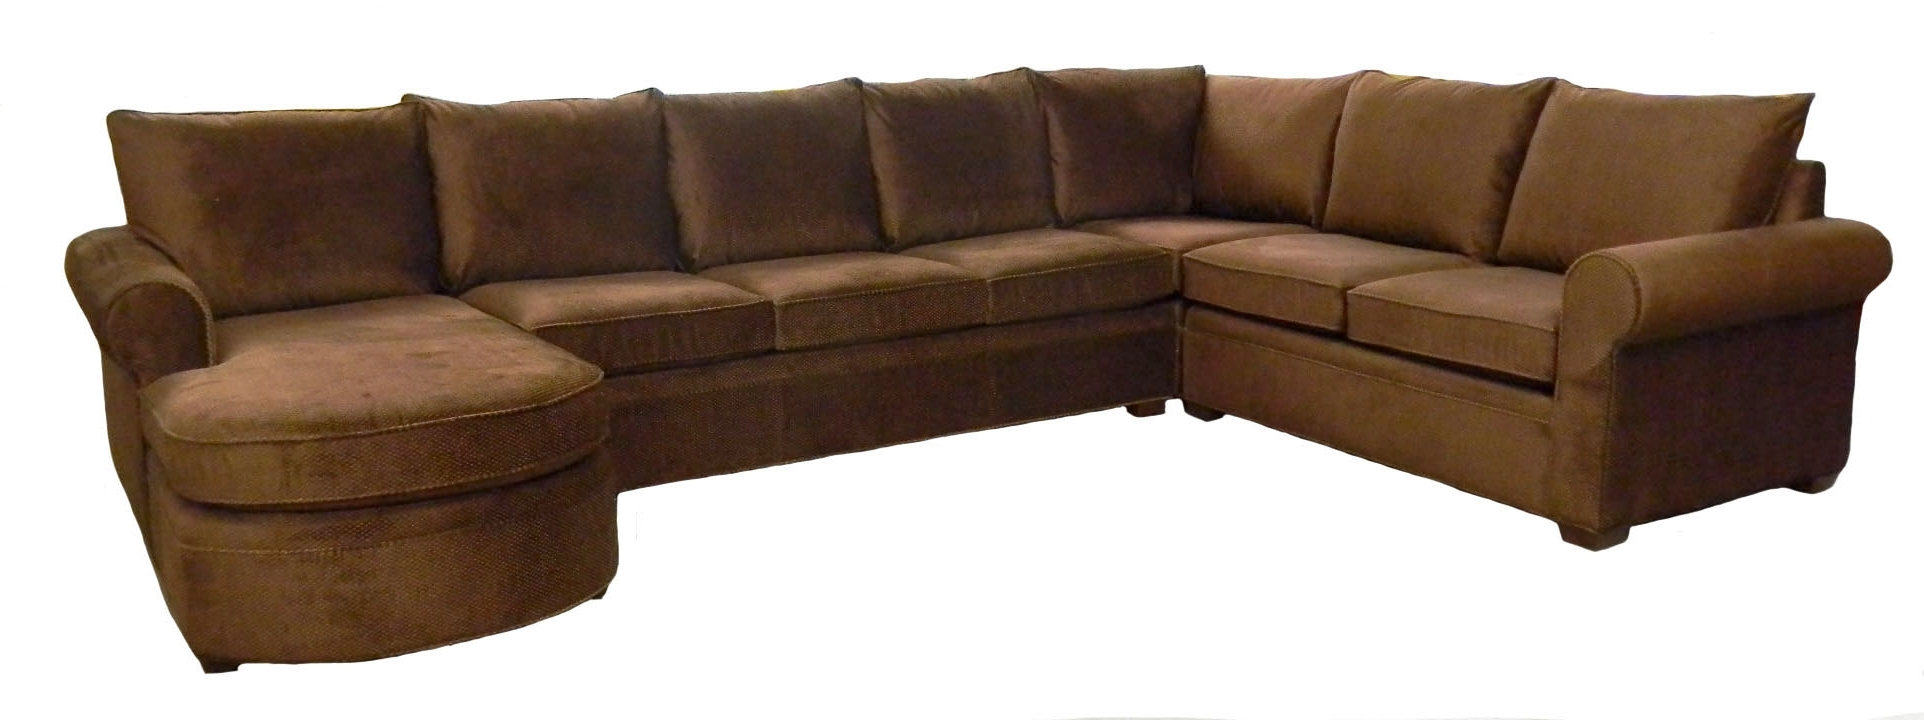 Famous Examples Custom Sectional Sofas Carolina Chair Furniture Inside Customizable Sectional Sofas (View 9 of 20)